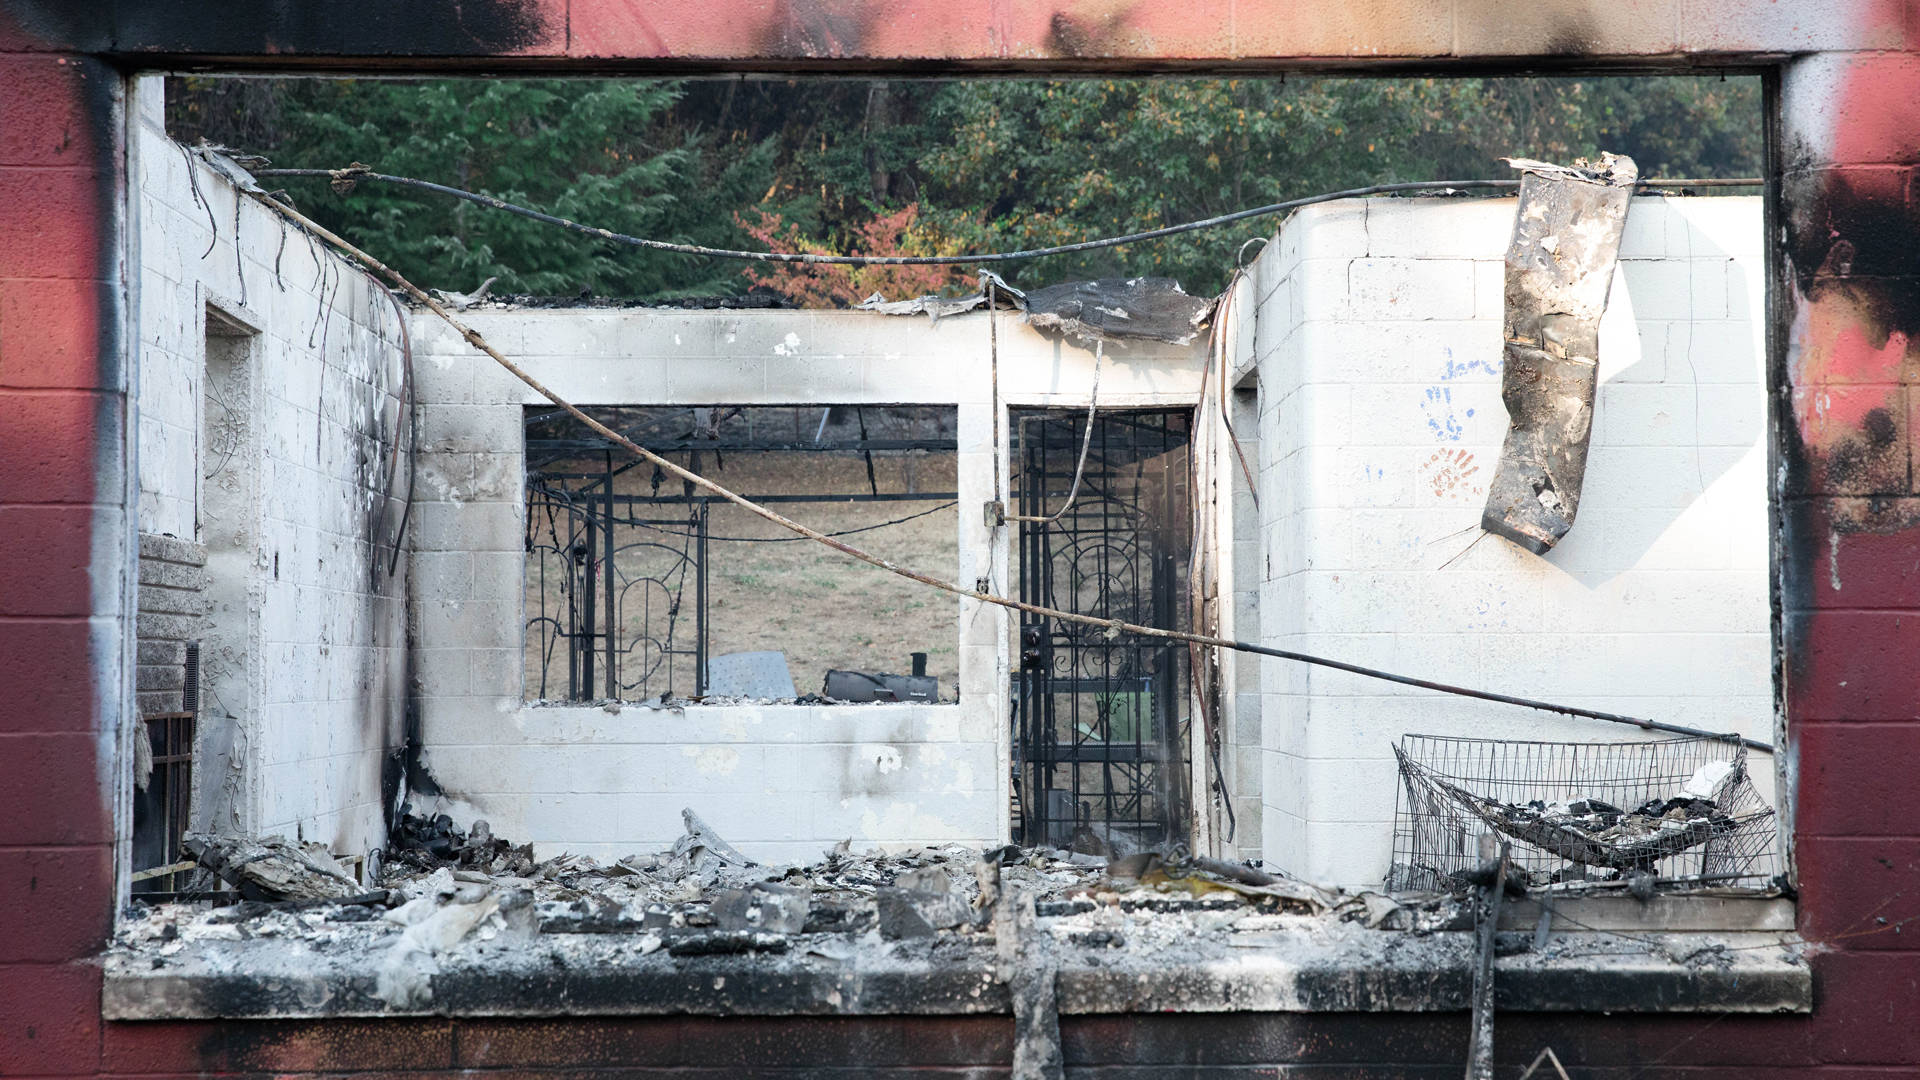 A view through the gutted staff house at Napa County's Enchanted Hills Camp.